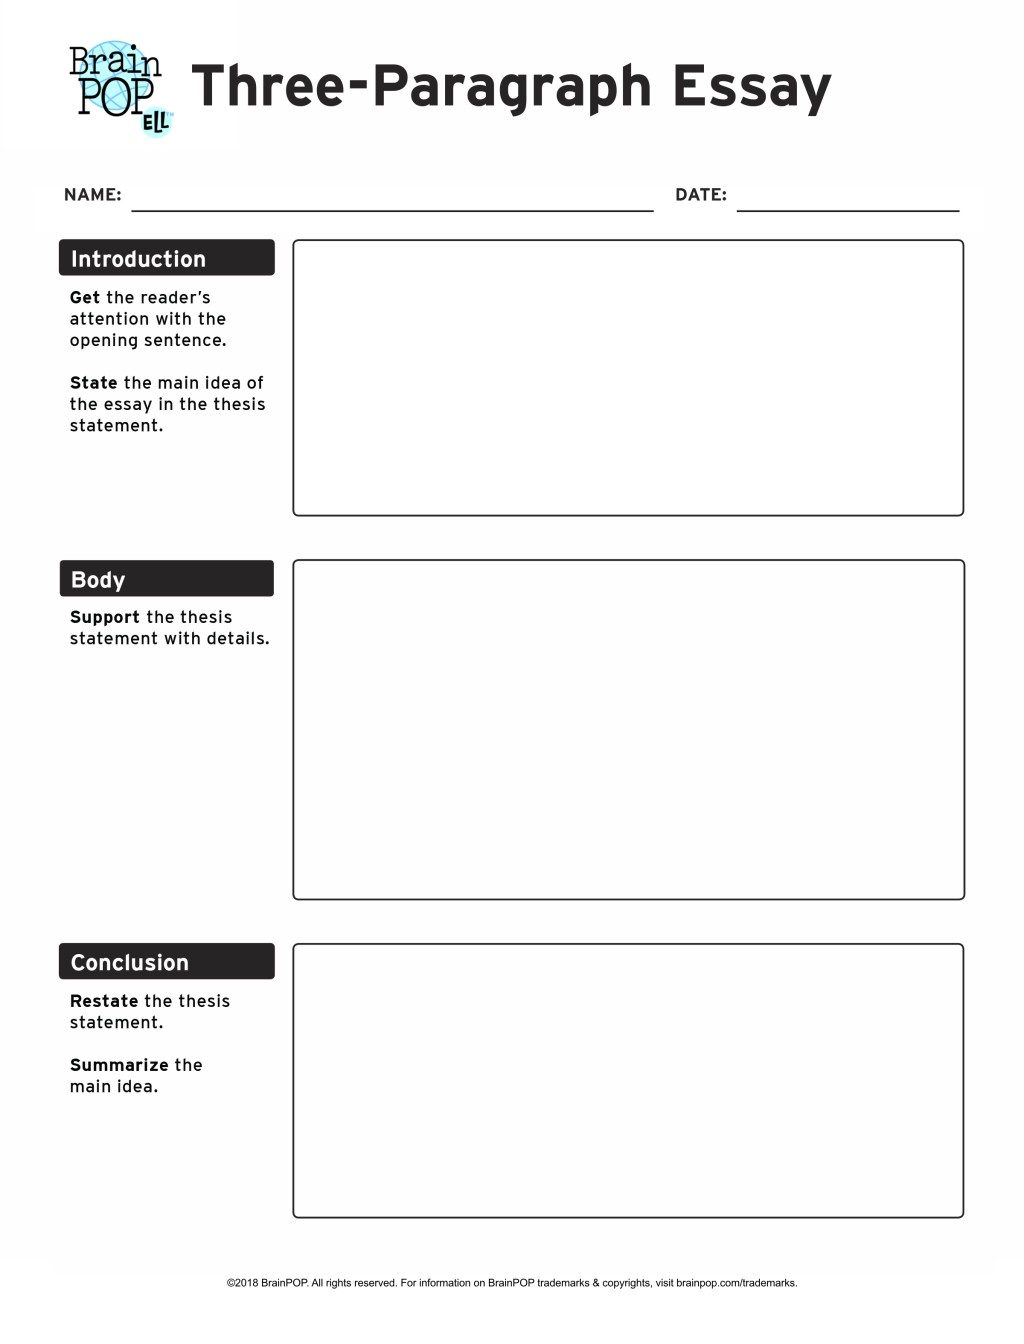 005 Essay Graphic Organizer Example Three Paragraph Incredible Narrative Pdf Persuasive Middle School Literary 5th Grade Large